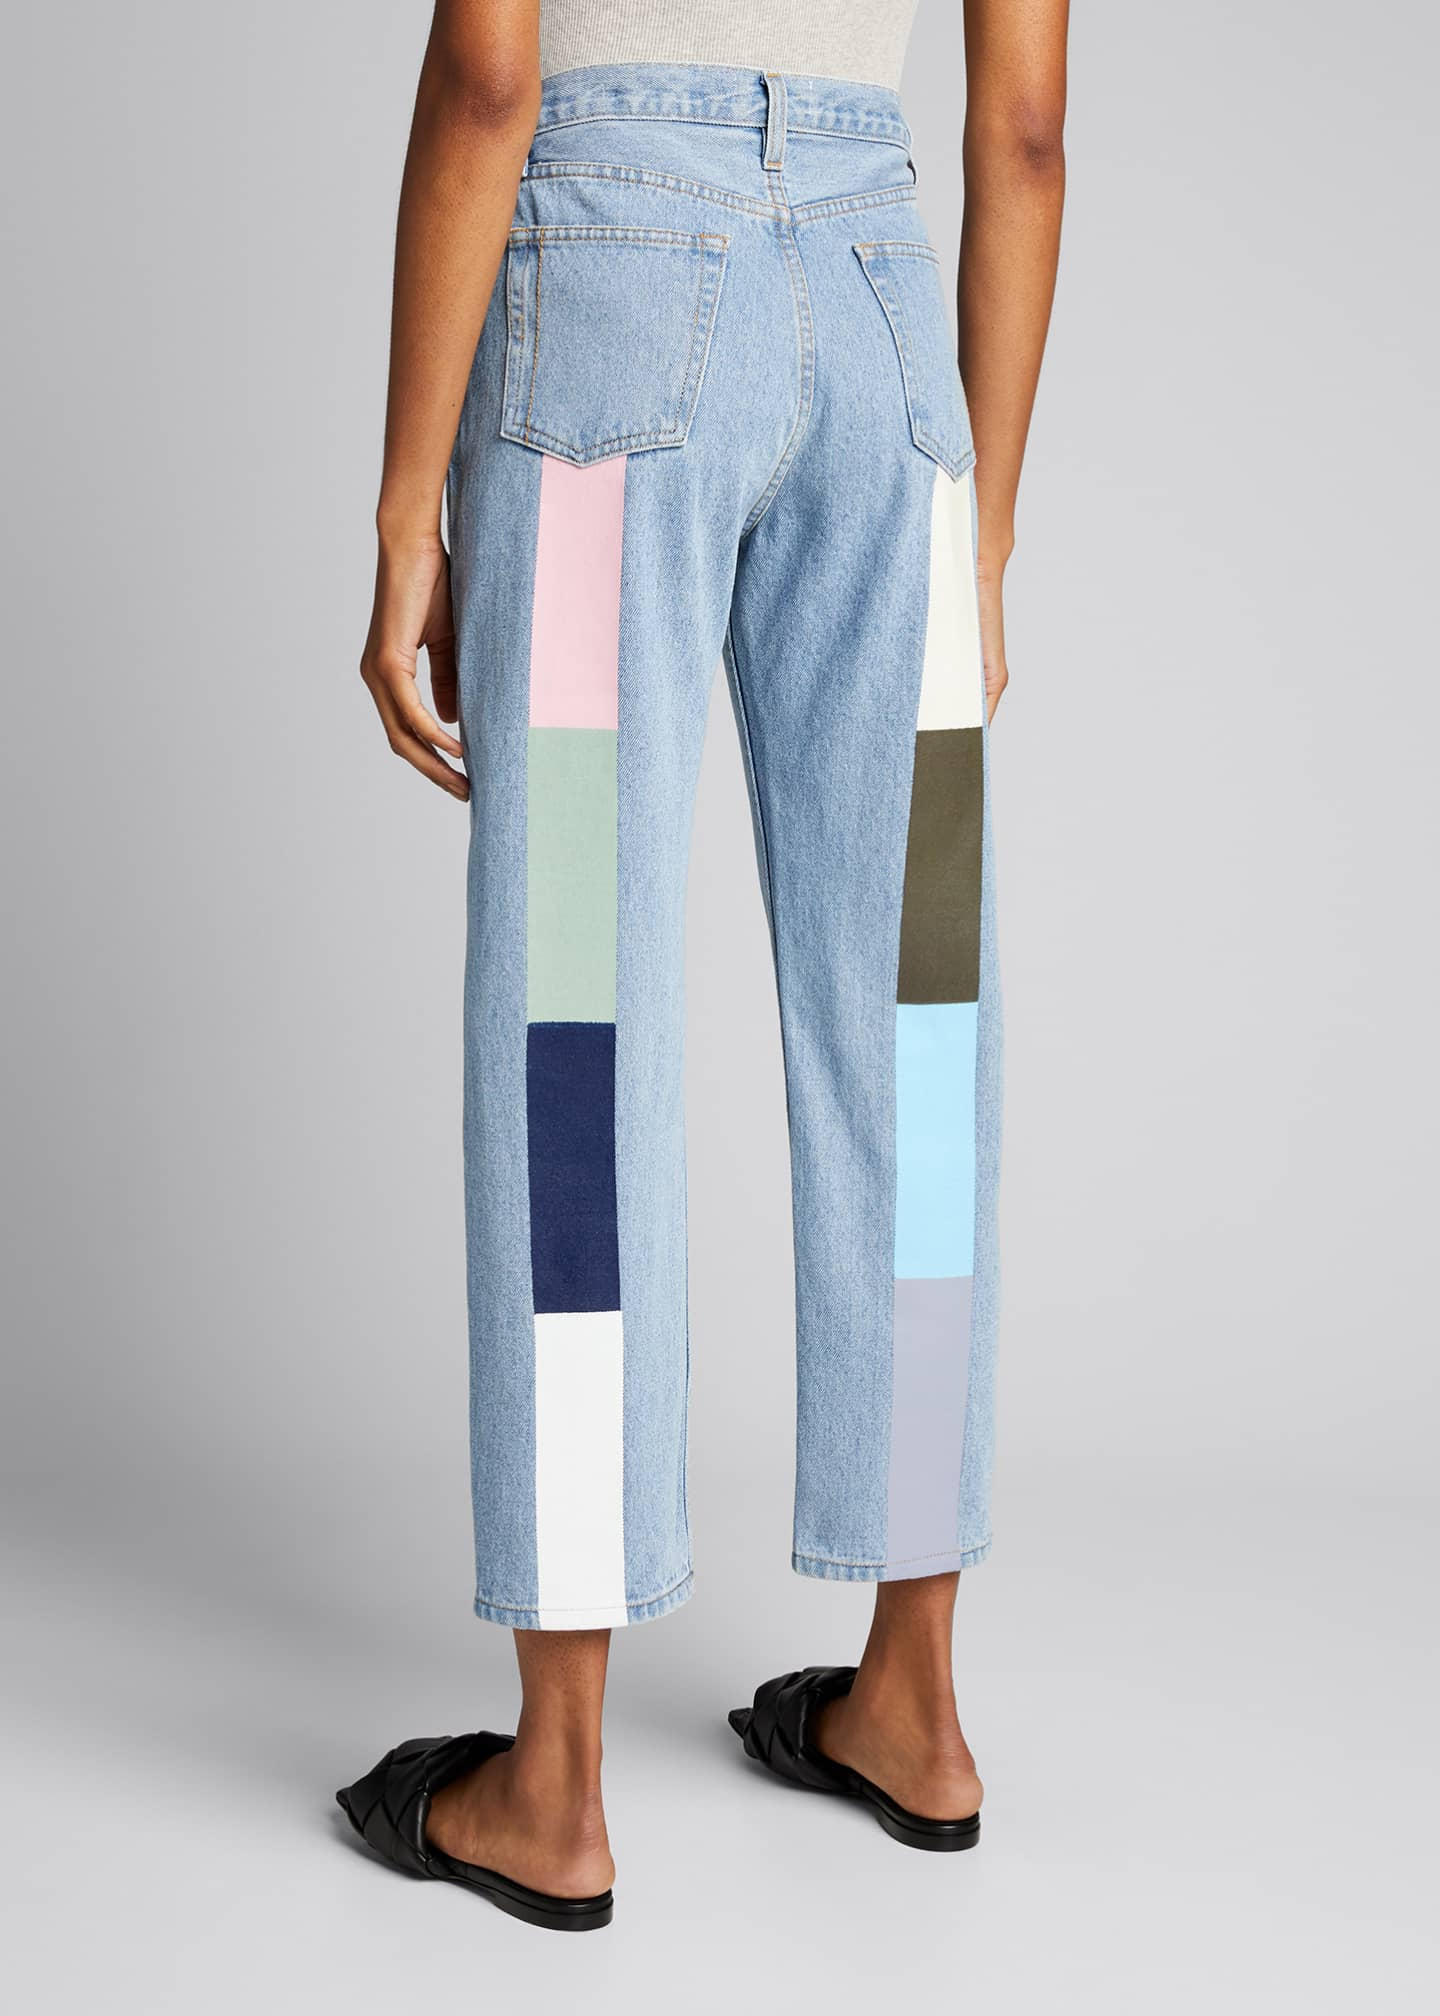 Image 1 of 5: Pastel Rainbow Tate Crop Jeans